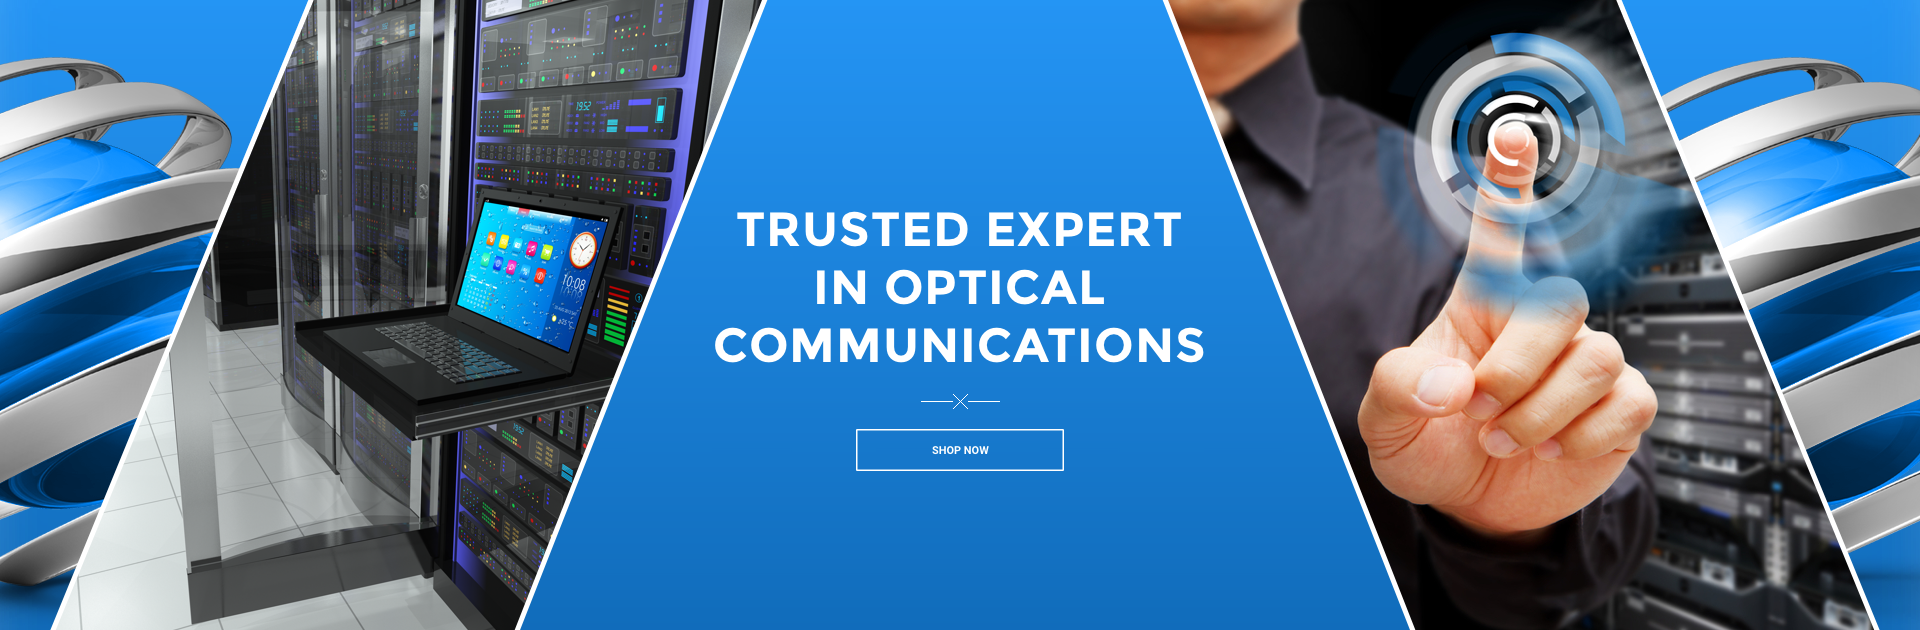 Trusted Expert in Optical Communications